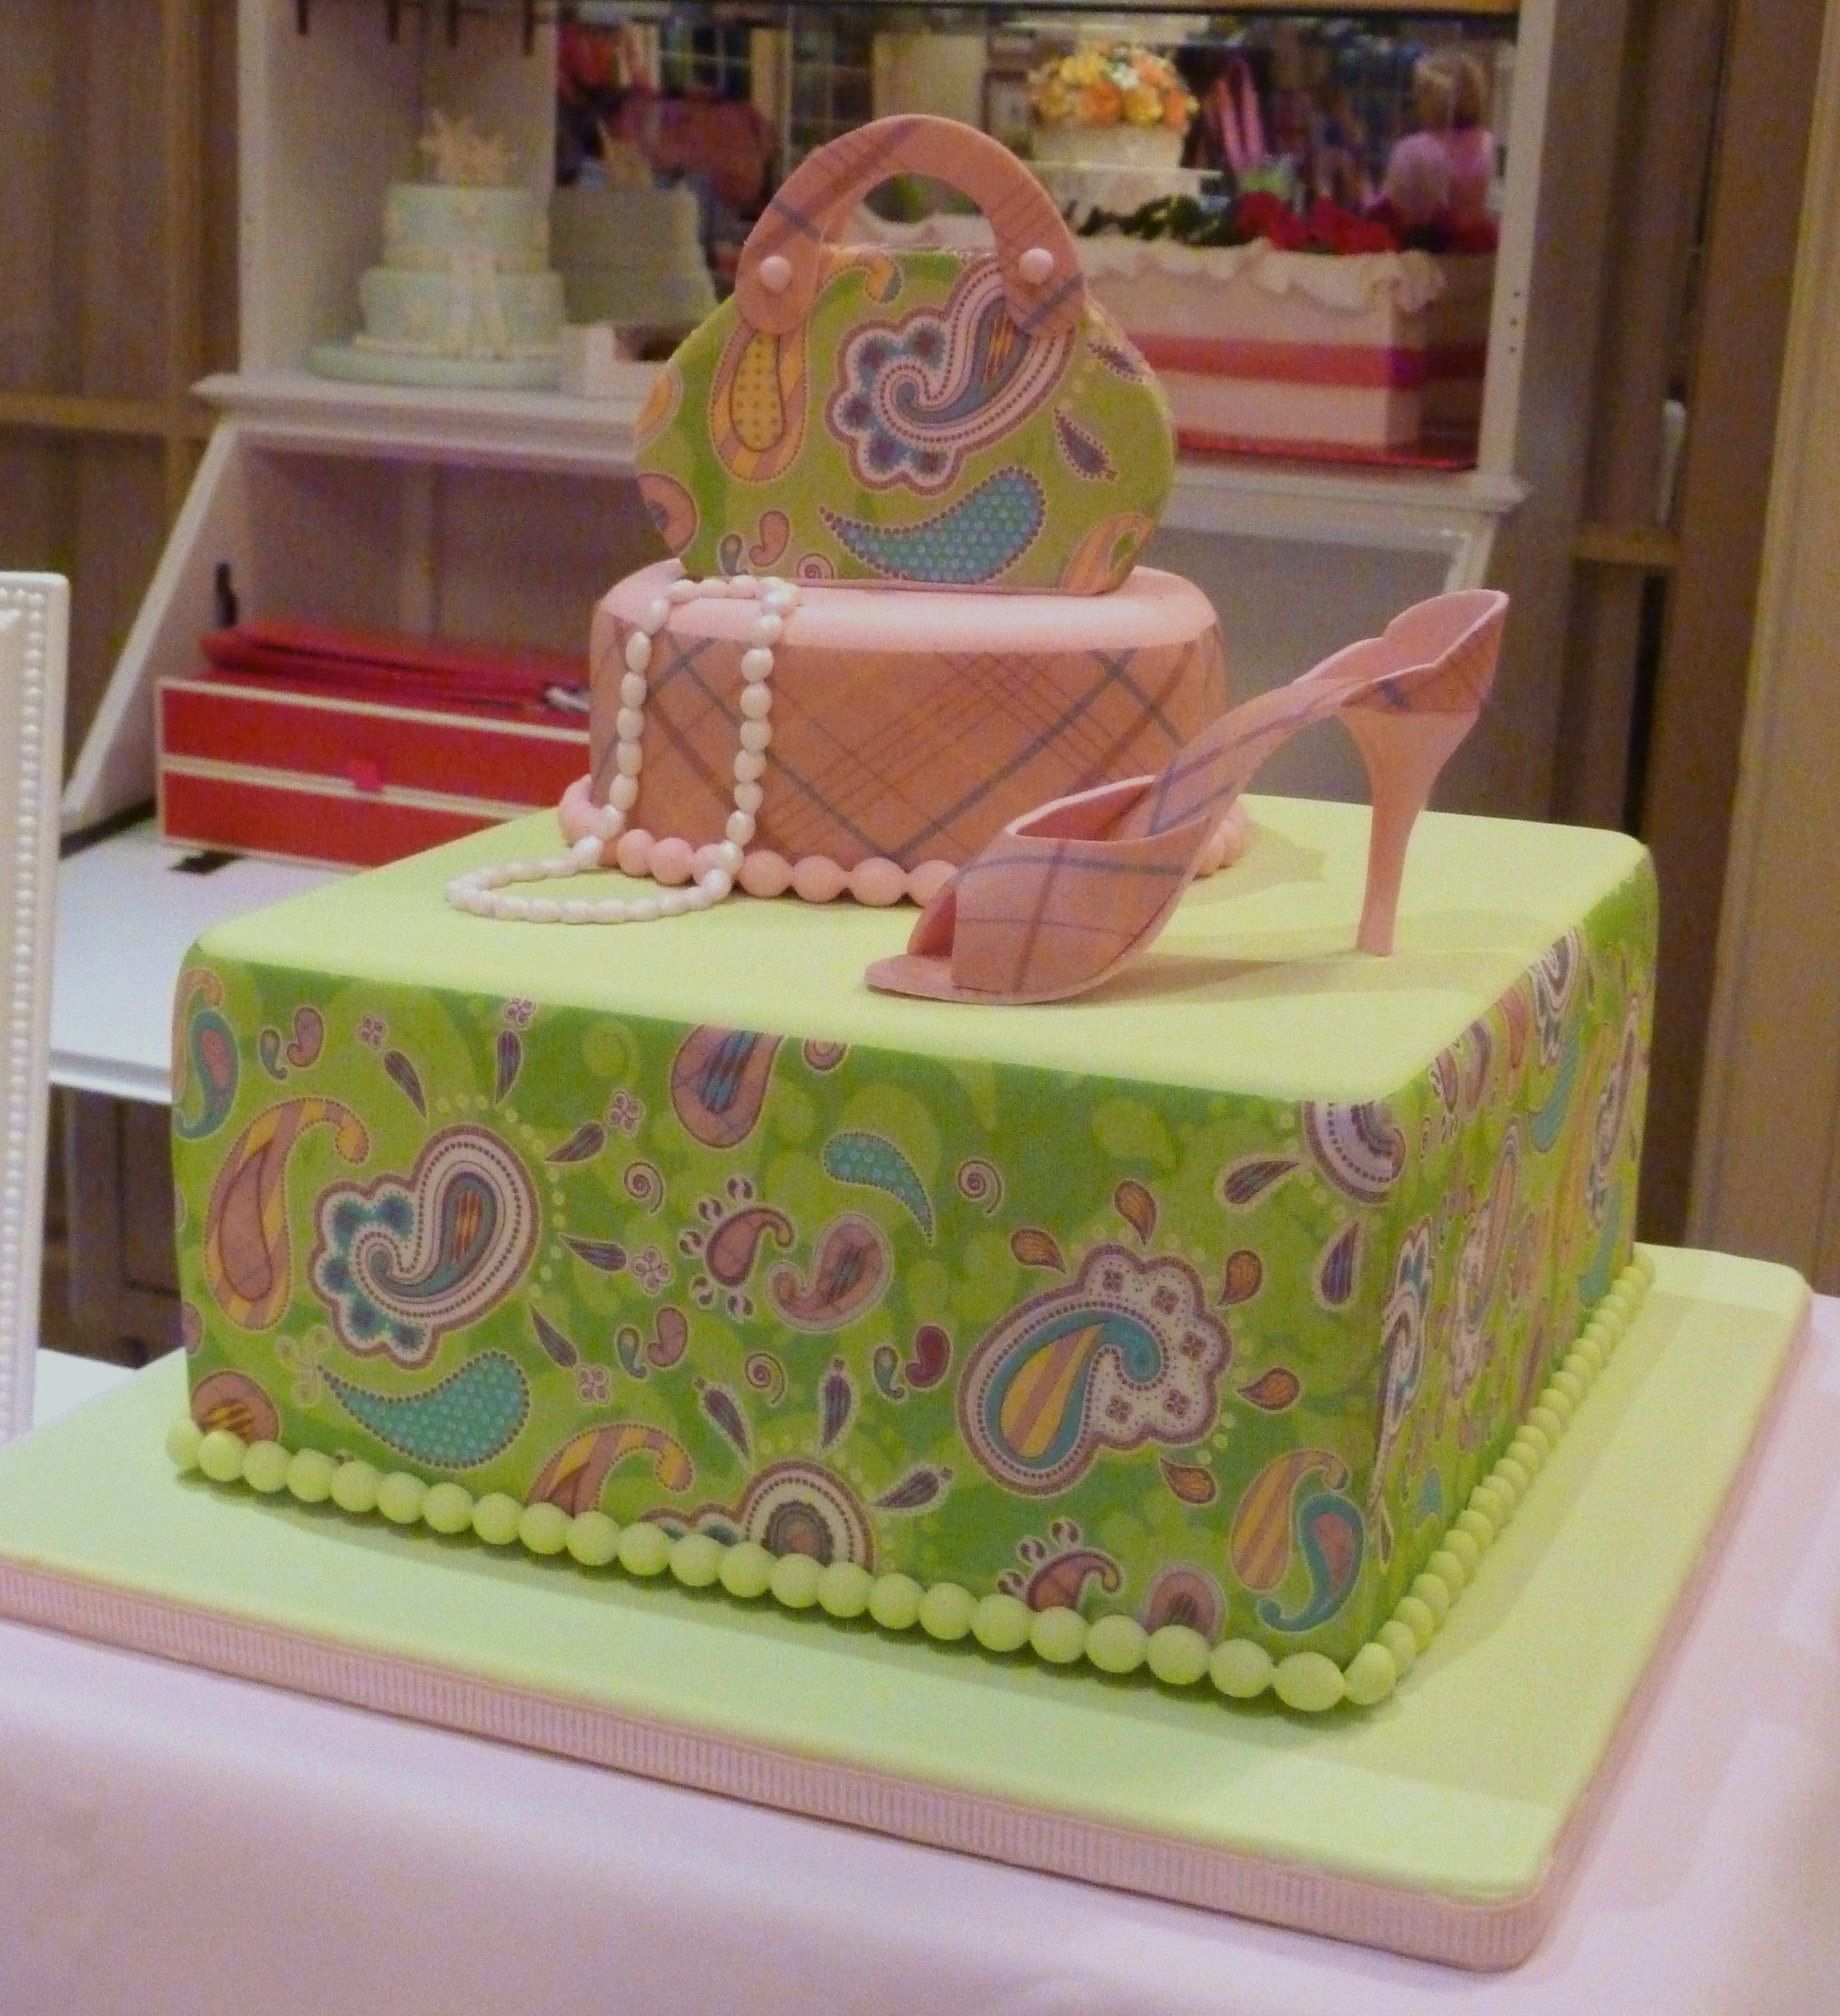 A shopper's celebration cake